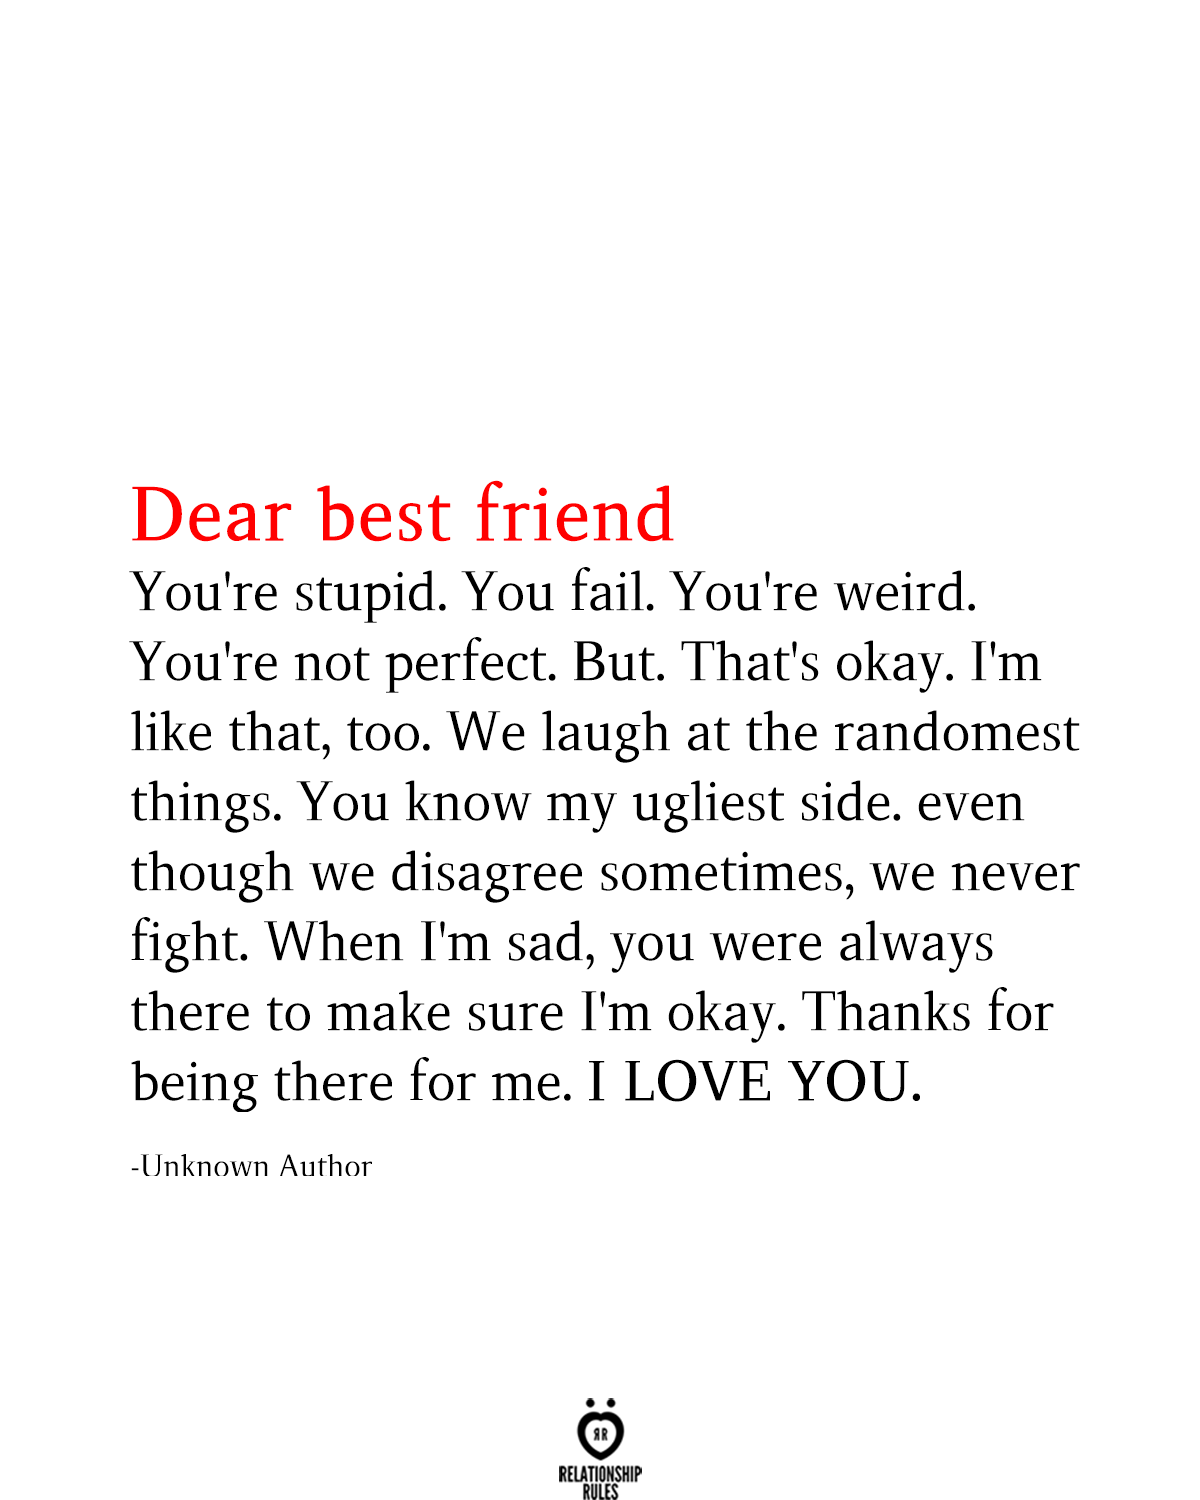 Relationship Rules A Lifestyle Brand For The Heart My Best Friend Quotes Friends Quotes Best Friend Quotes Funny